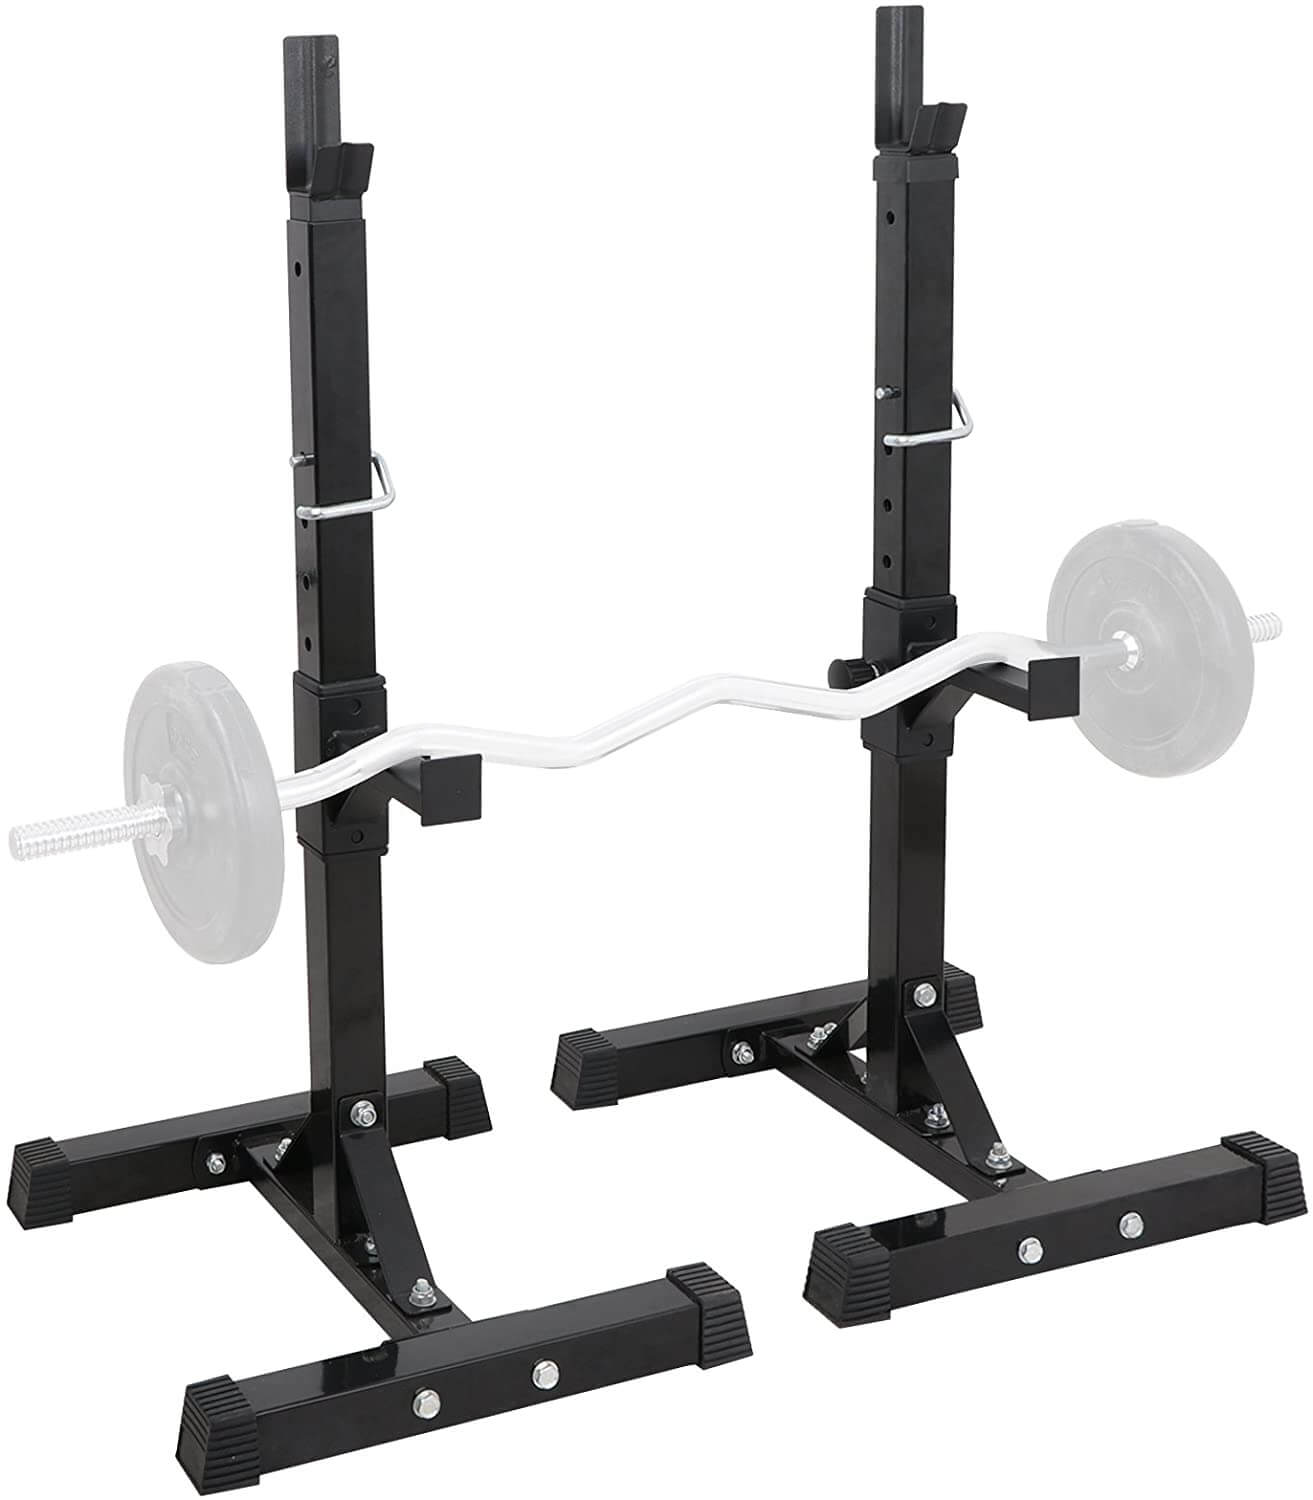 BARBELL FOR YOUR GARAGE GYM EQUIPMENT